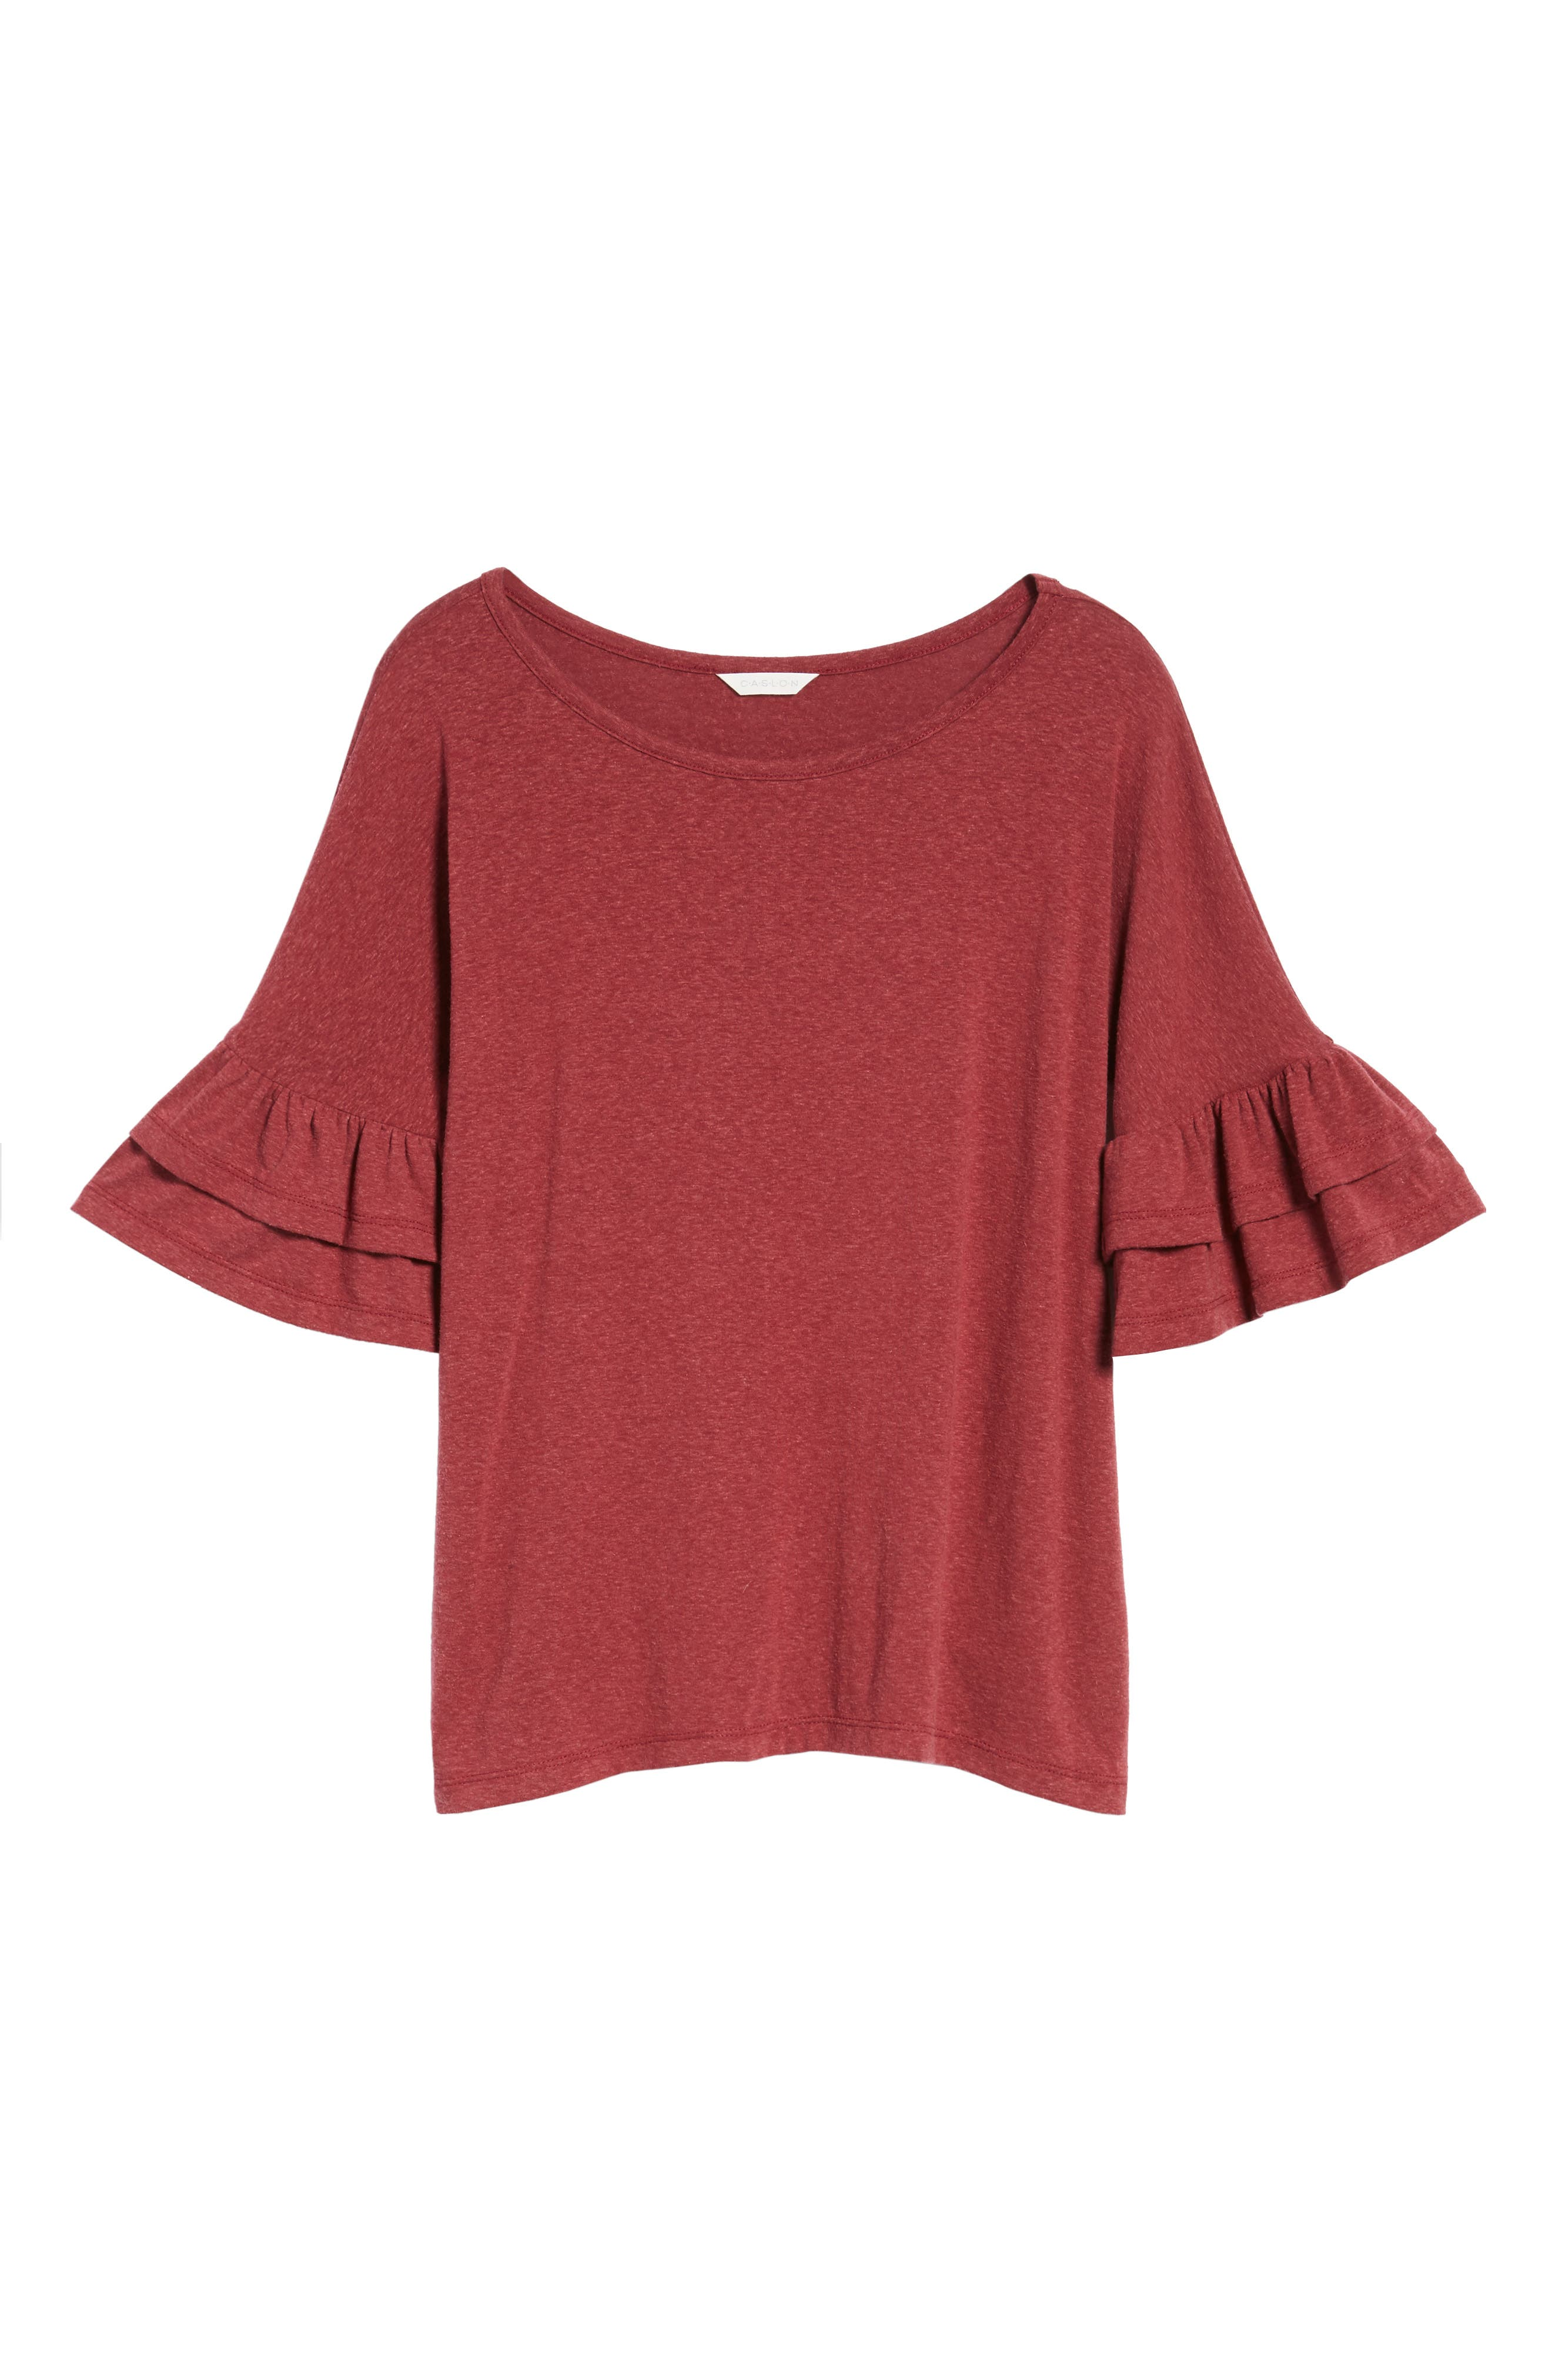 Tiered Bell Sleeve Tee,                             Alternate thumbnail 41, color,